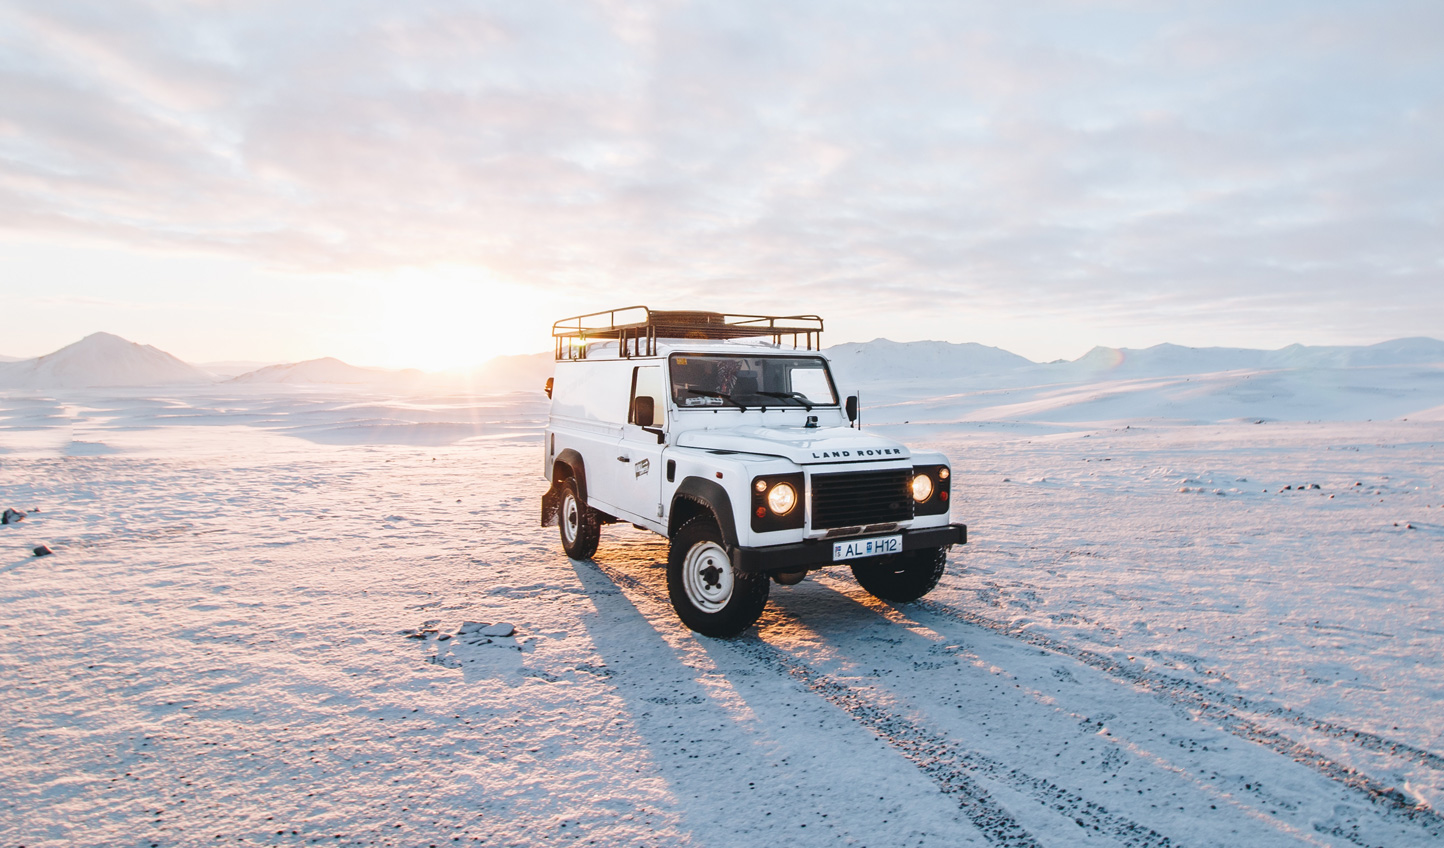 Embark on an Icelandic adventure